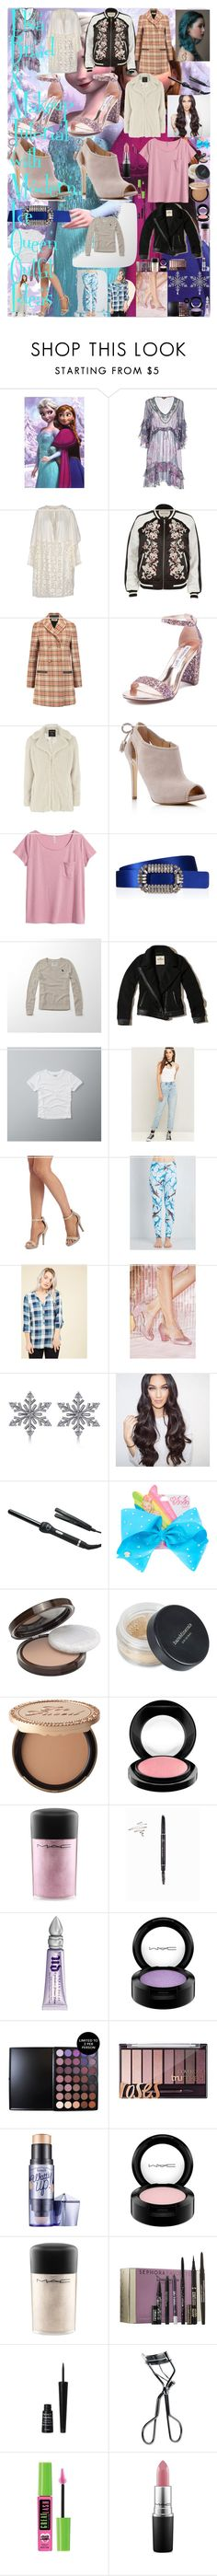 """""""Elsa Braid & Makeup Tutorial with Modern Ice Queen Outfit Ideas"""" by oroartye-1 on Polyvore featuring beauty, Miss Bikini, LAURENCE BRAS, River Island, Tory Burch, Steve Madden, Dorothy Perkins, MICHAEL Michael Kors, H&M and Roger Vivier"""